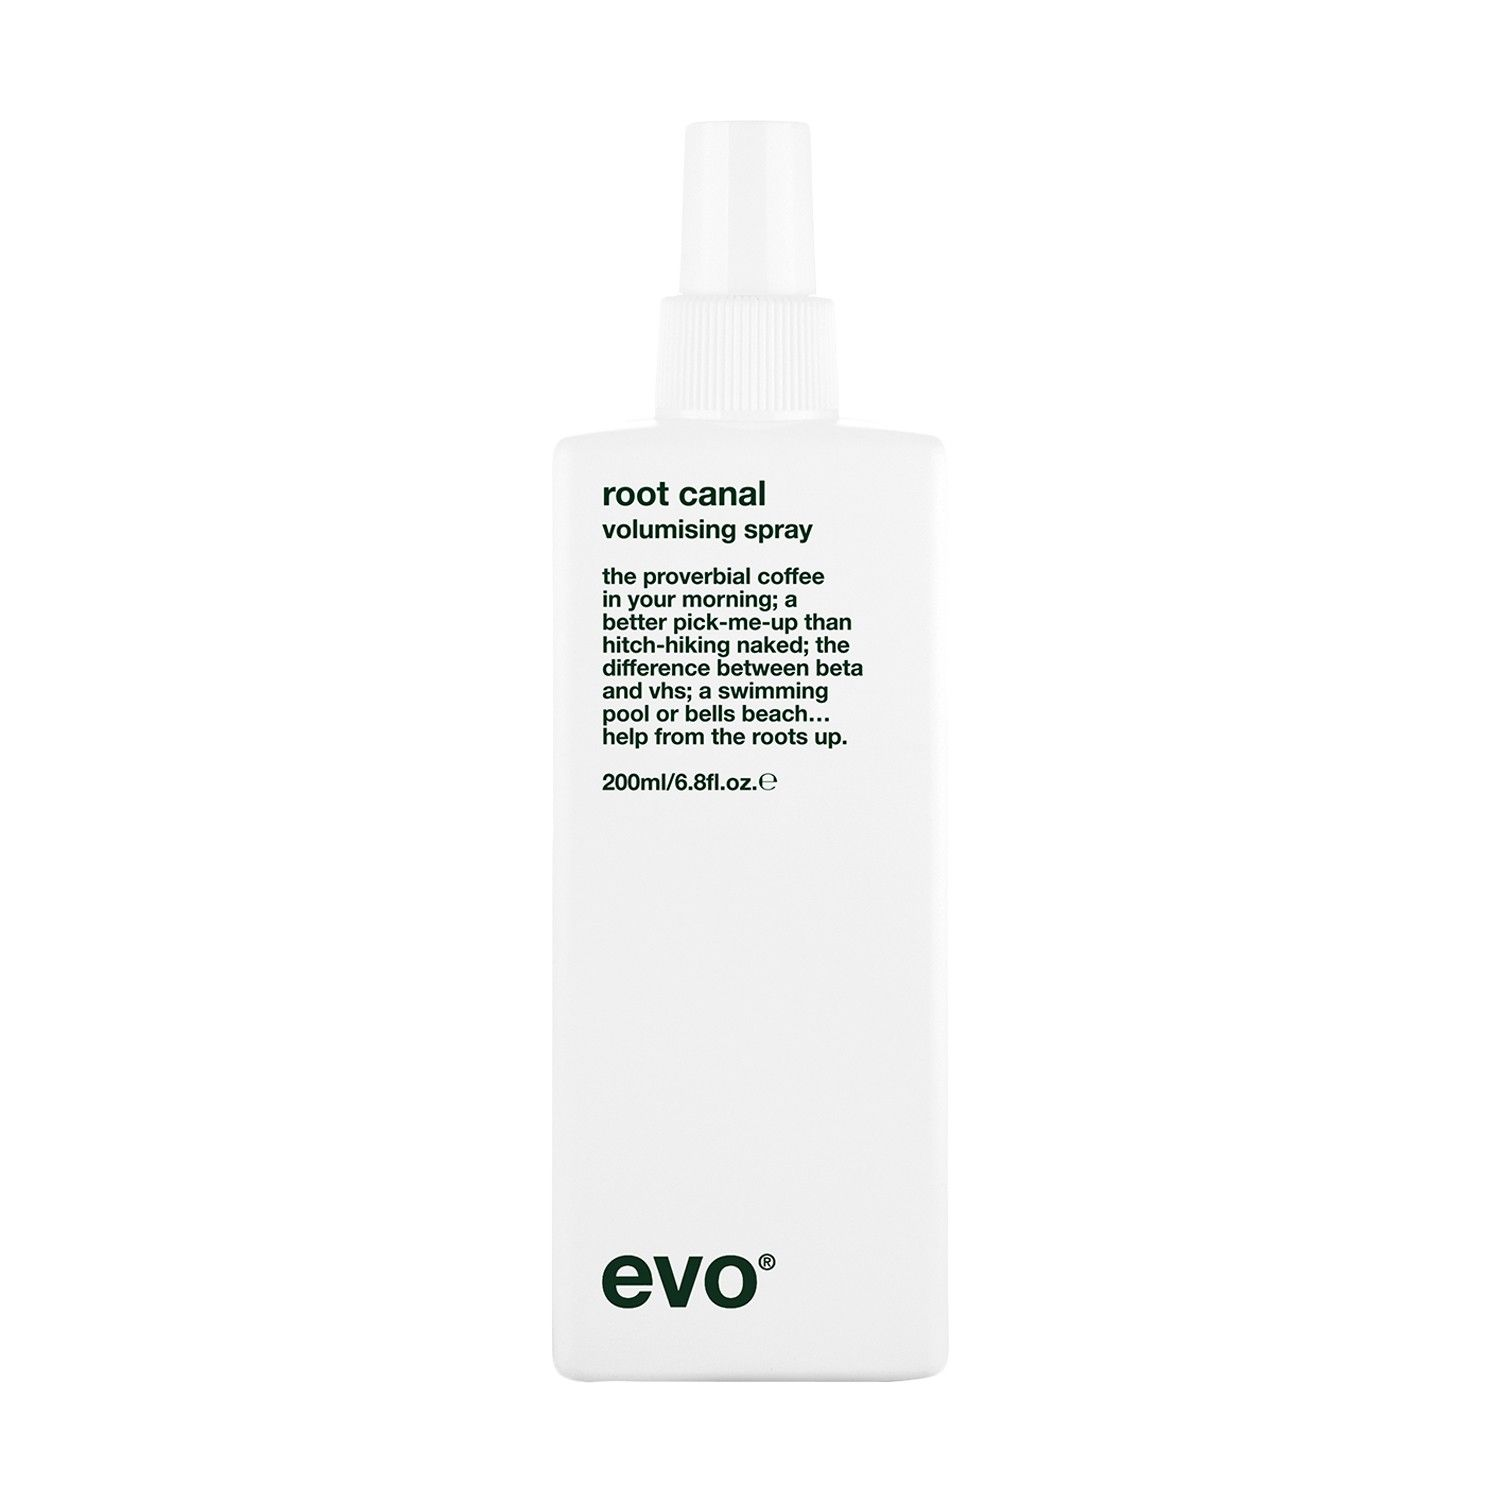 Evo root canal volumizing spray  Shops Flats and Pump